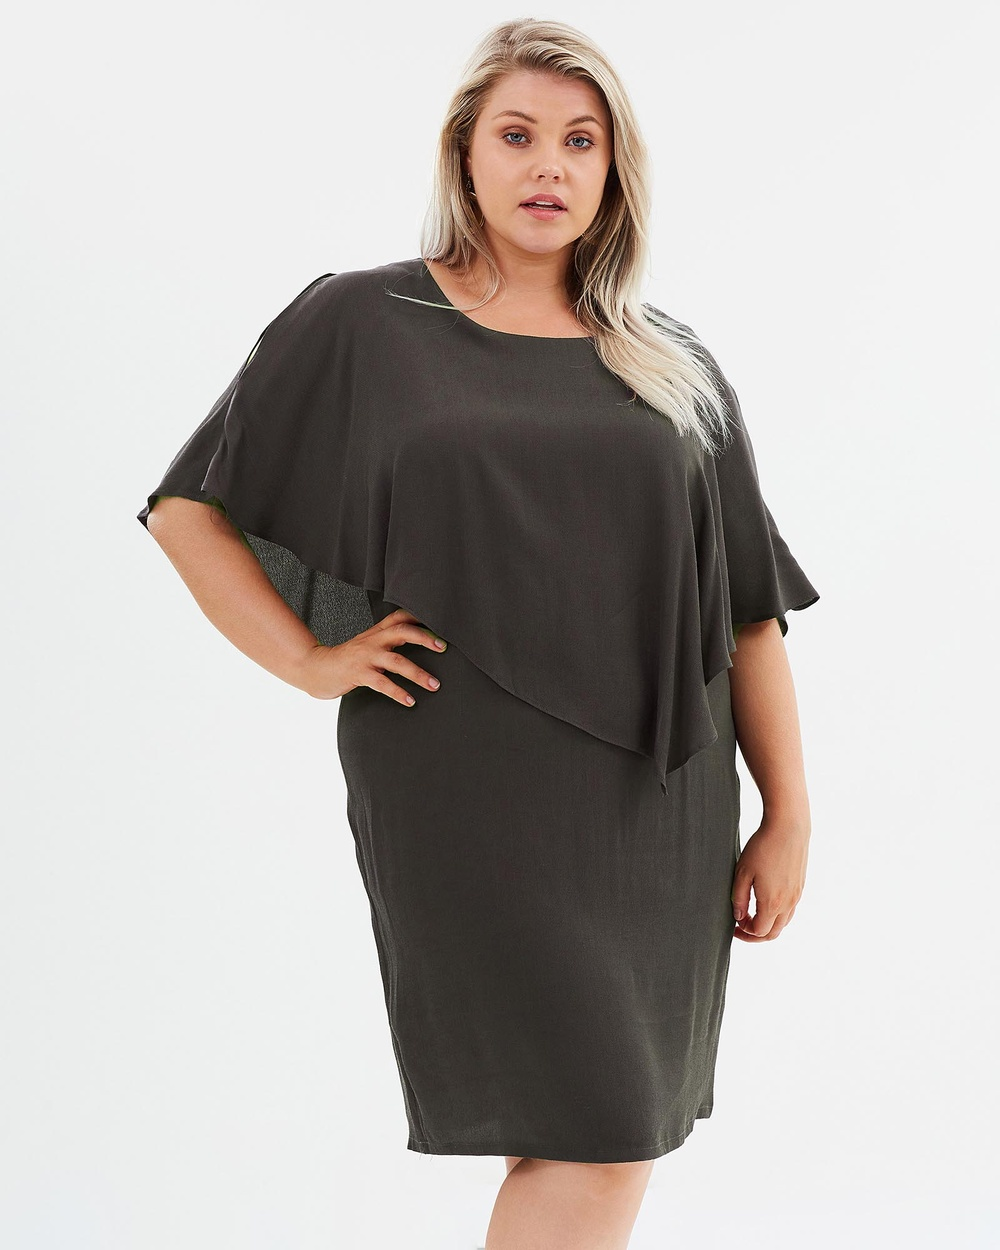 Advocado Plus Asymmetric Flounce Dress Dresses Slate Asymmetric Flounce Dress